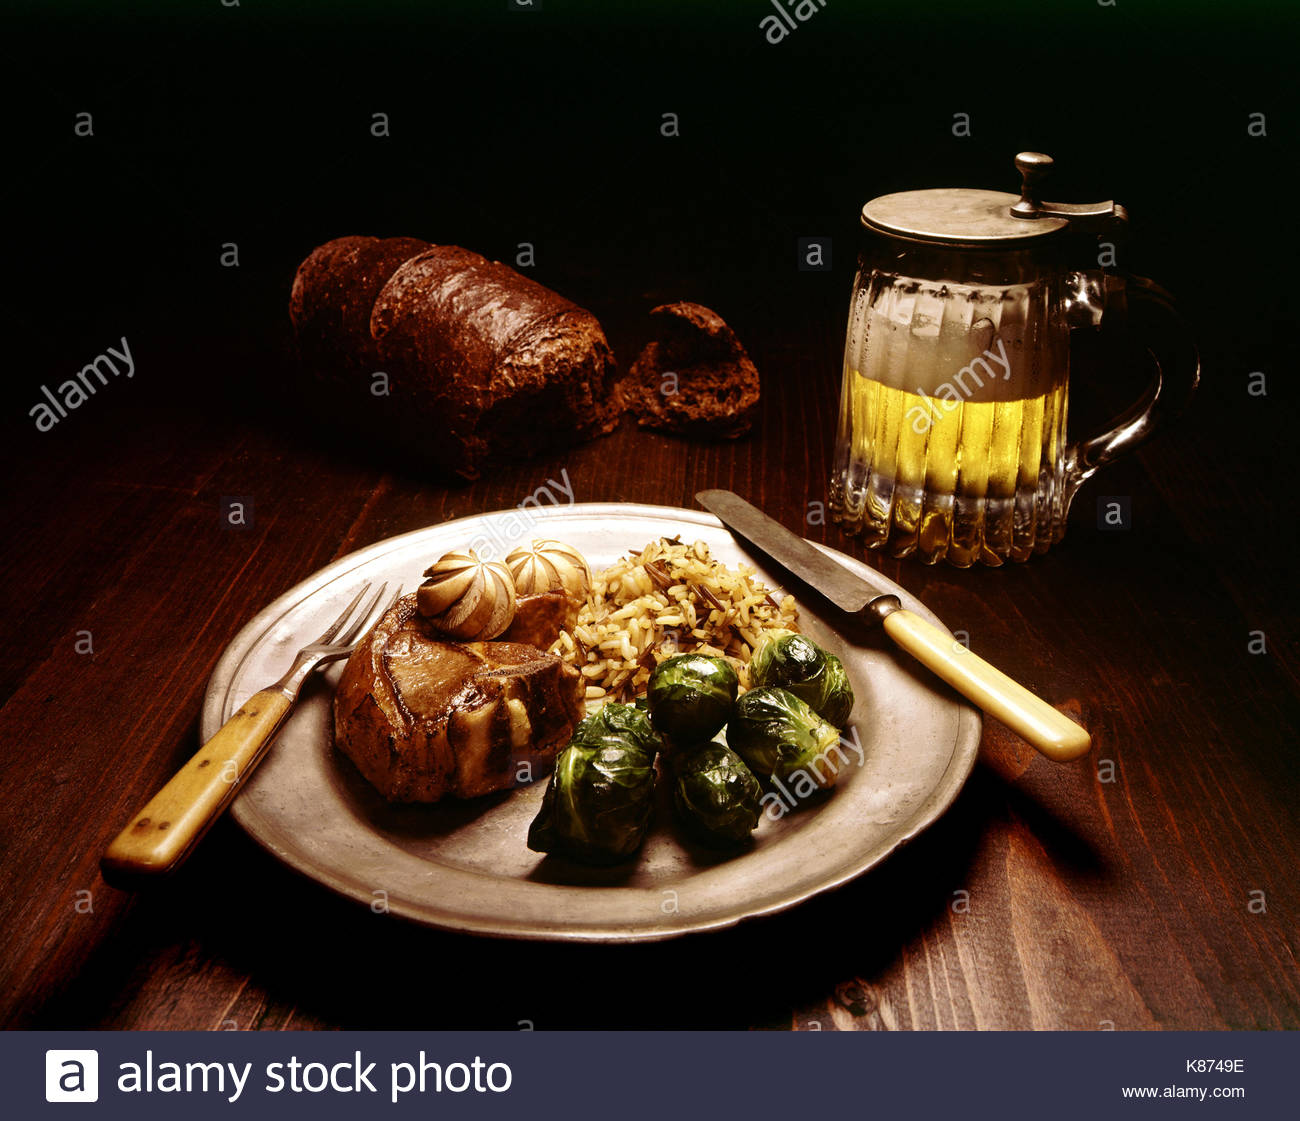 TABLE SETTING WITH LAMB CHOP, BRUSSELS SPROUTS & WILD RICE ON A PEWTER PLATE. BONE HANDLE KNIFE AND FORK, BEER, AND PUMPERNICKEL ON WOODEN TABLE. - Stock Image